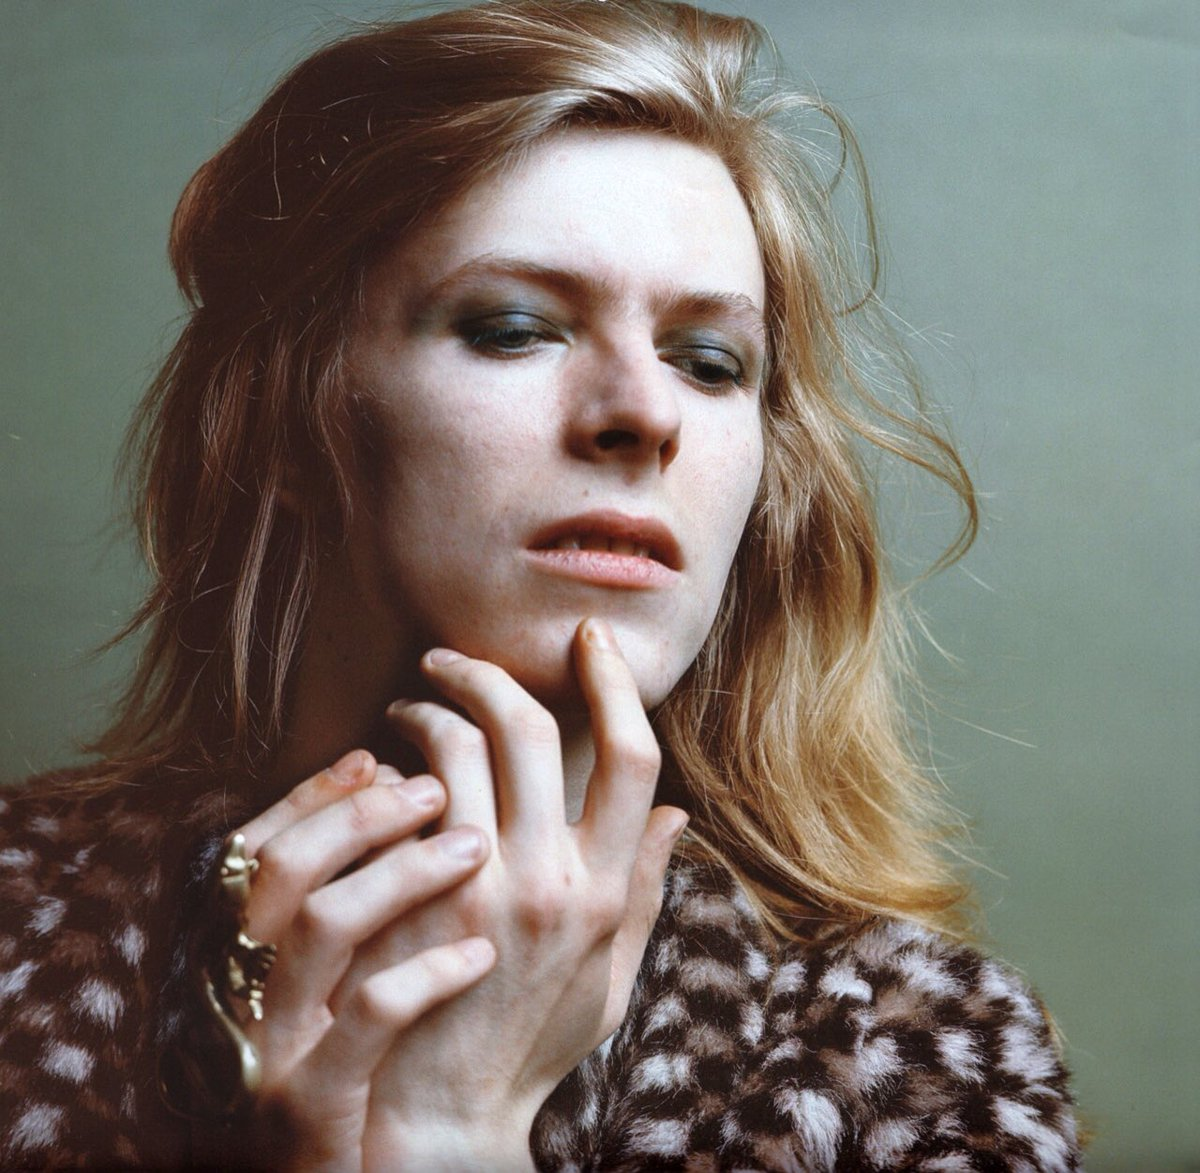 Vintage Pics On Twitter David Bowie Hunky Dory Photoshoot 70s